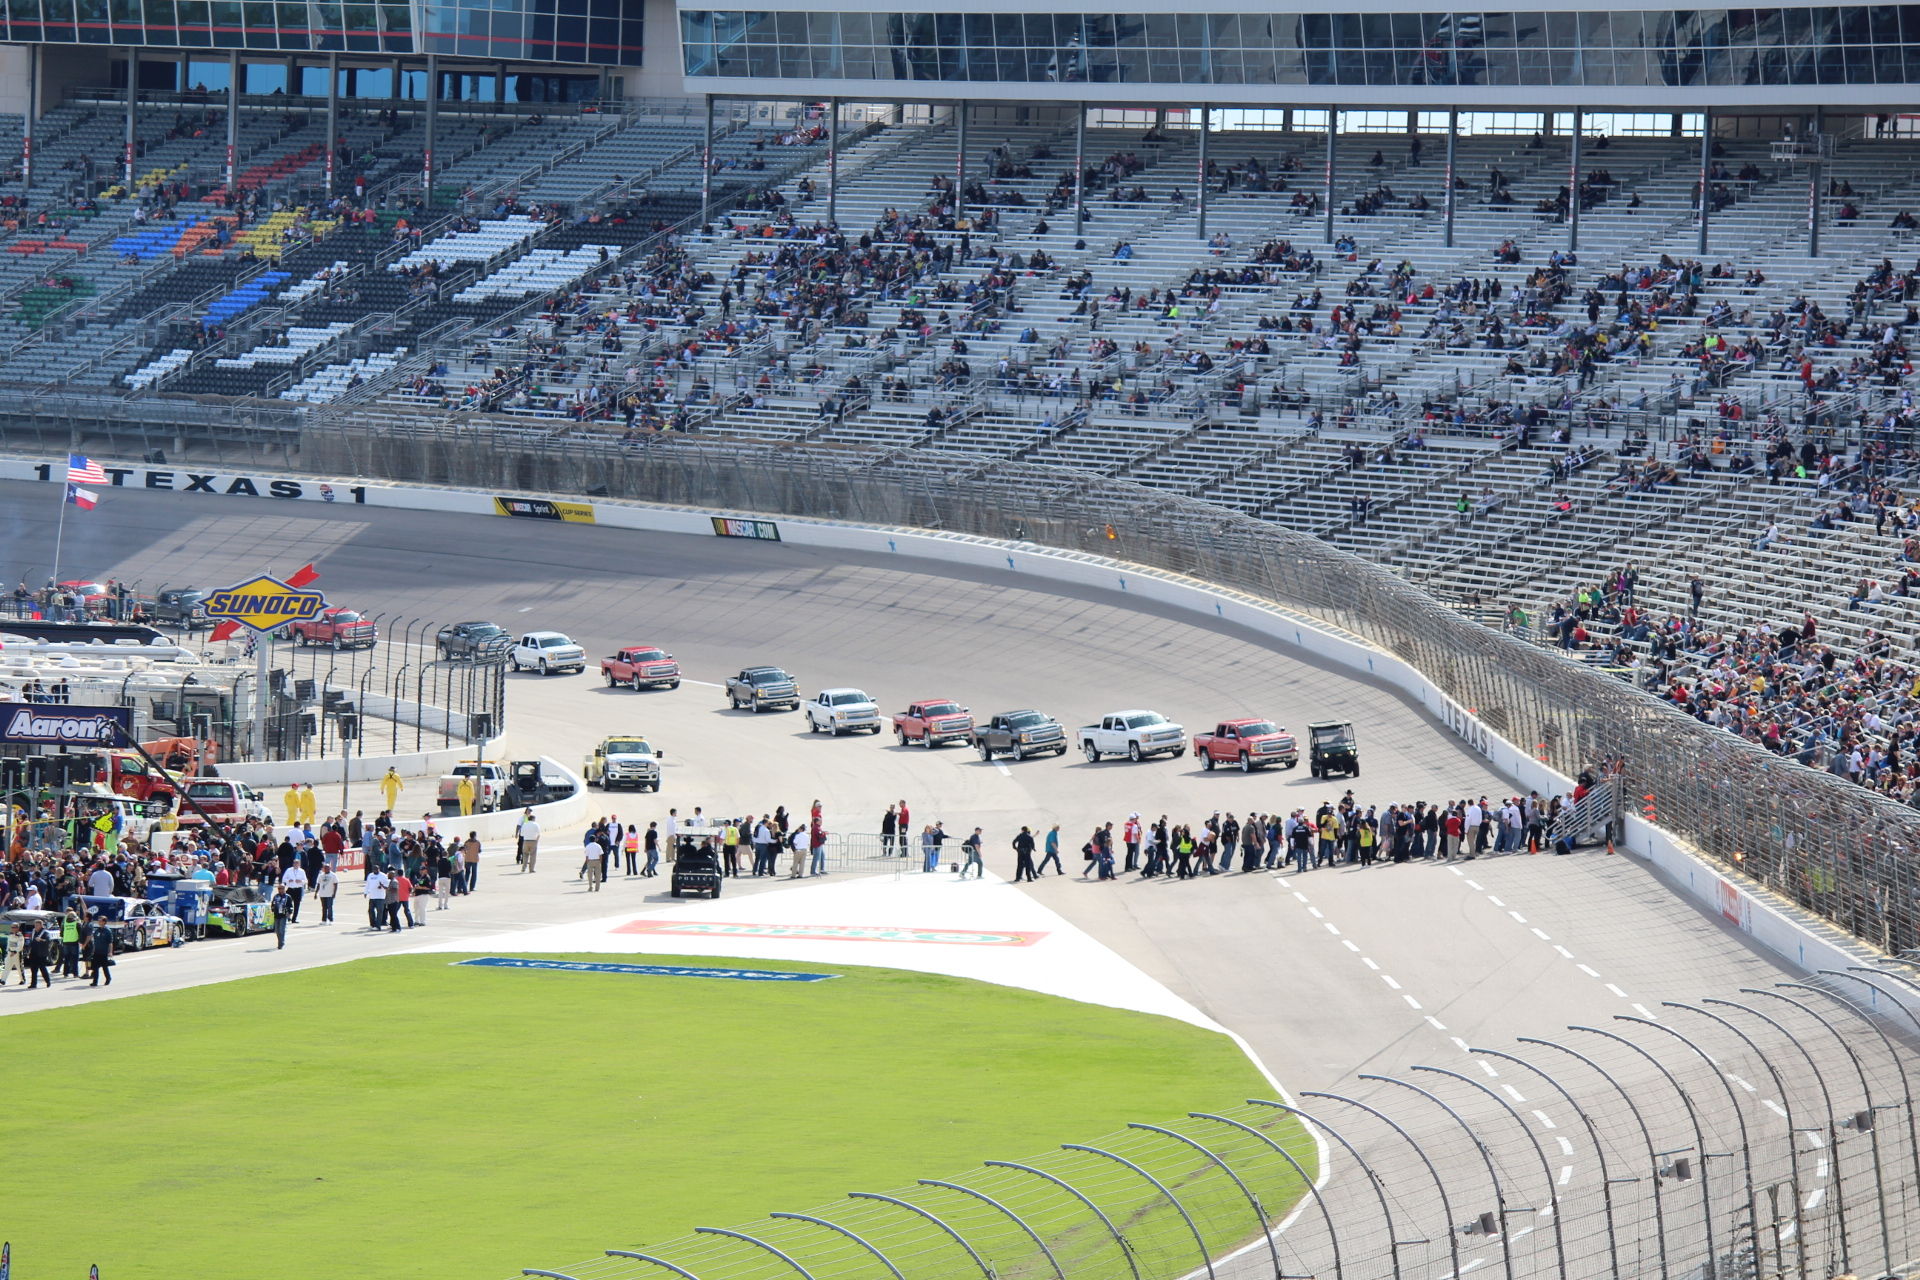 Before the Nascar Race...all the 2014 Chevrolet Silverado's lining up to pick up the drivers